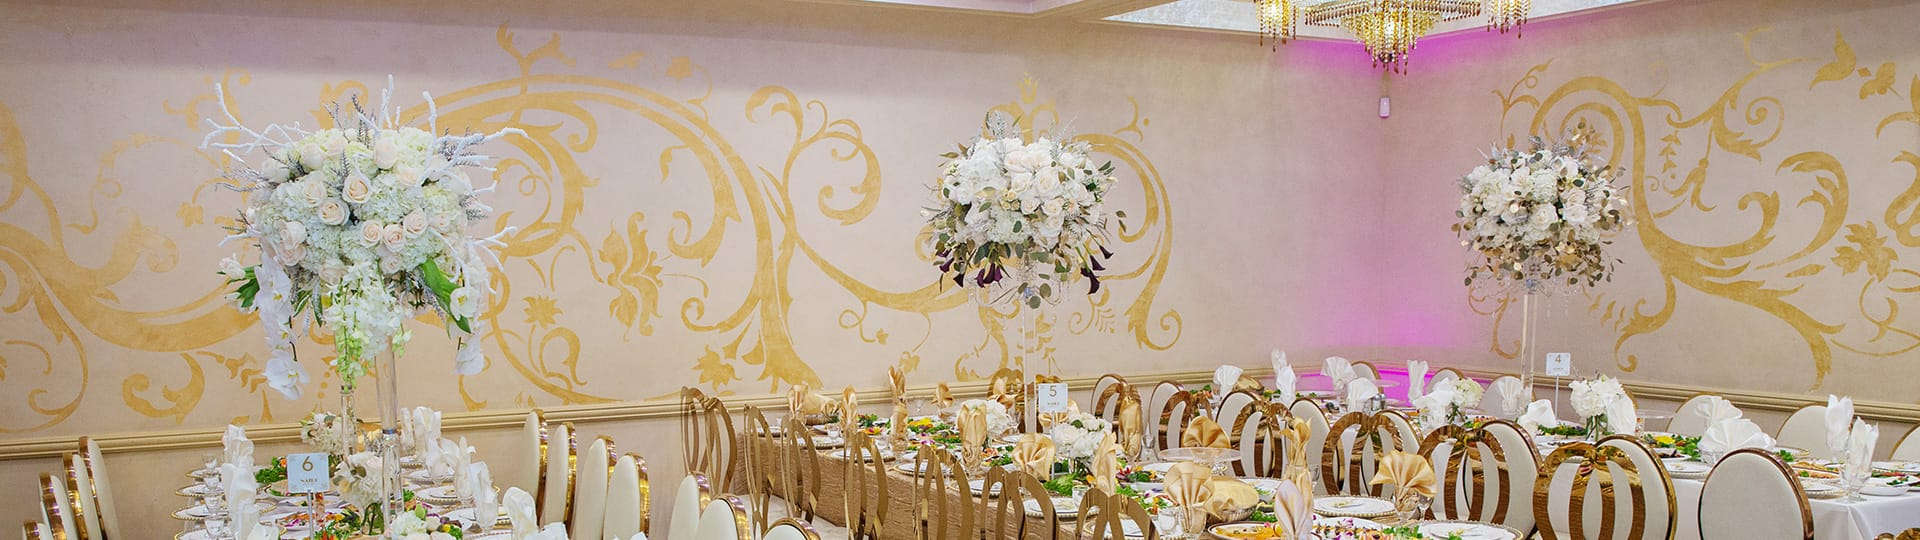 Nairi Banquet Hall - Wedding Venue